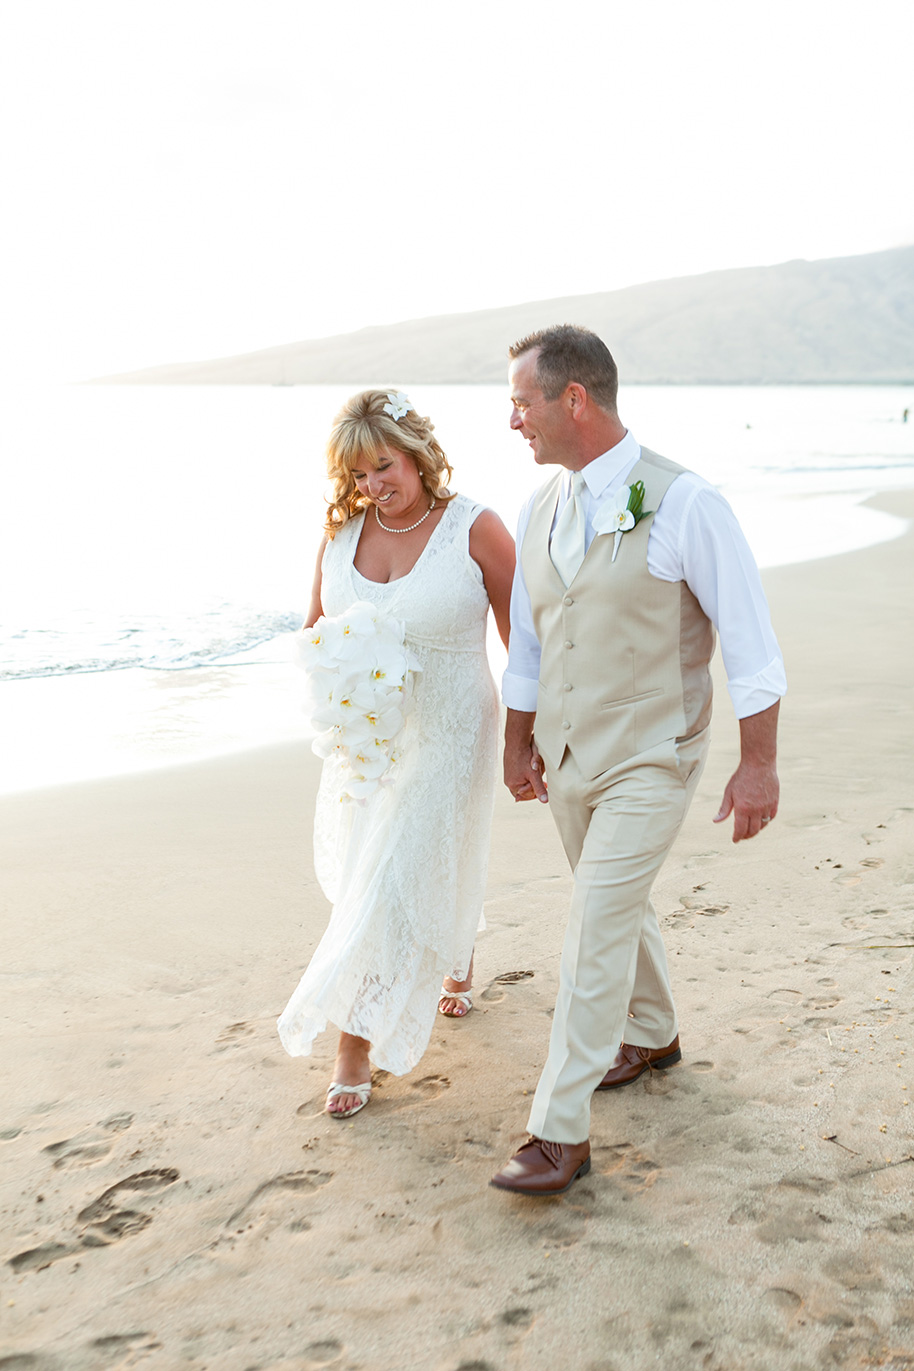 Maui-Beachside-Wedding-042916-20